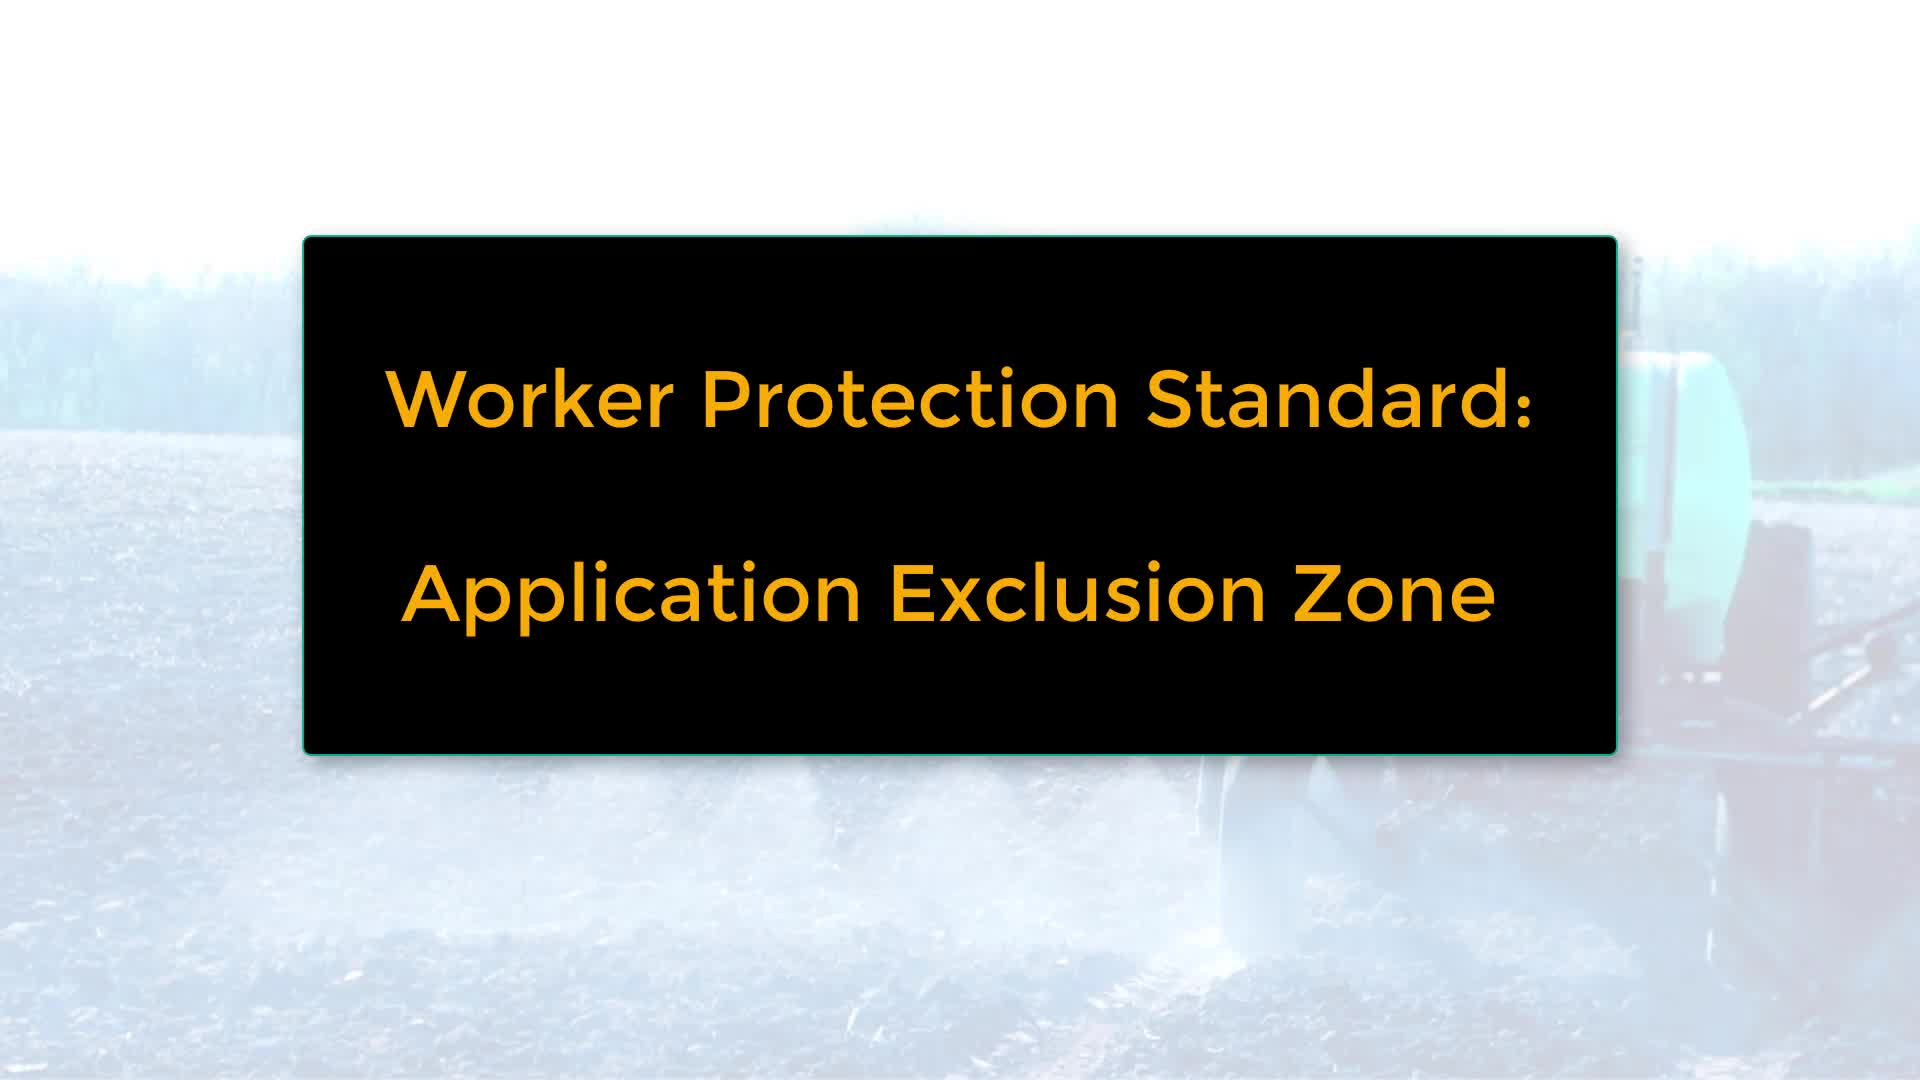 Application Exclusion Zone